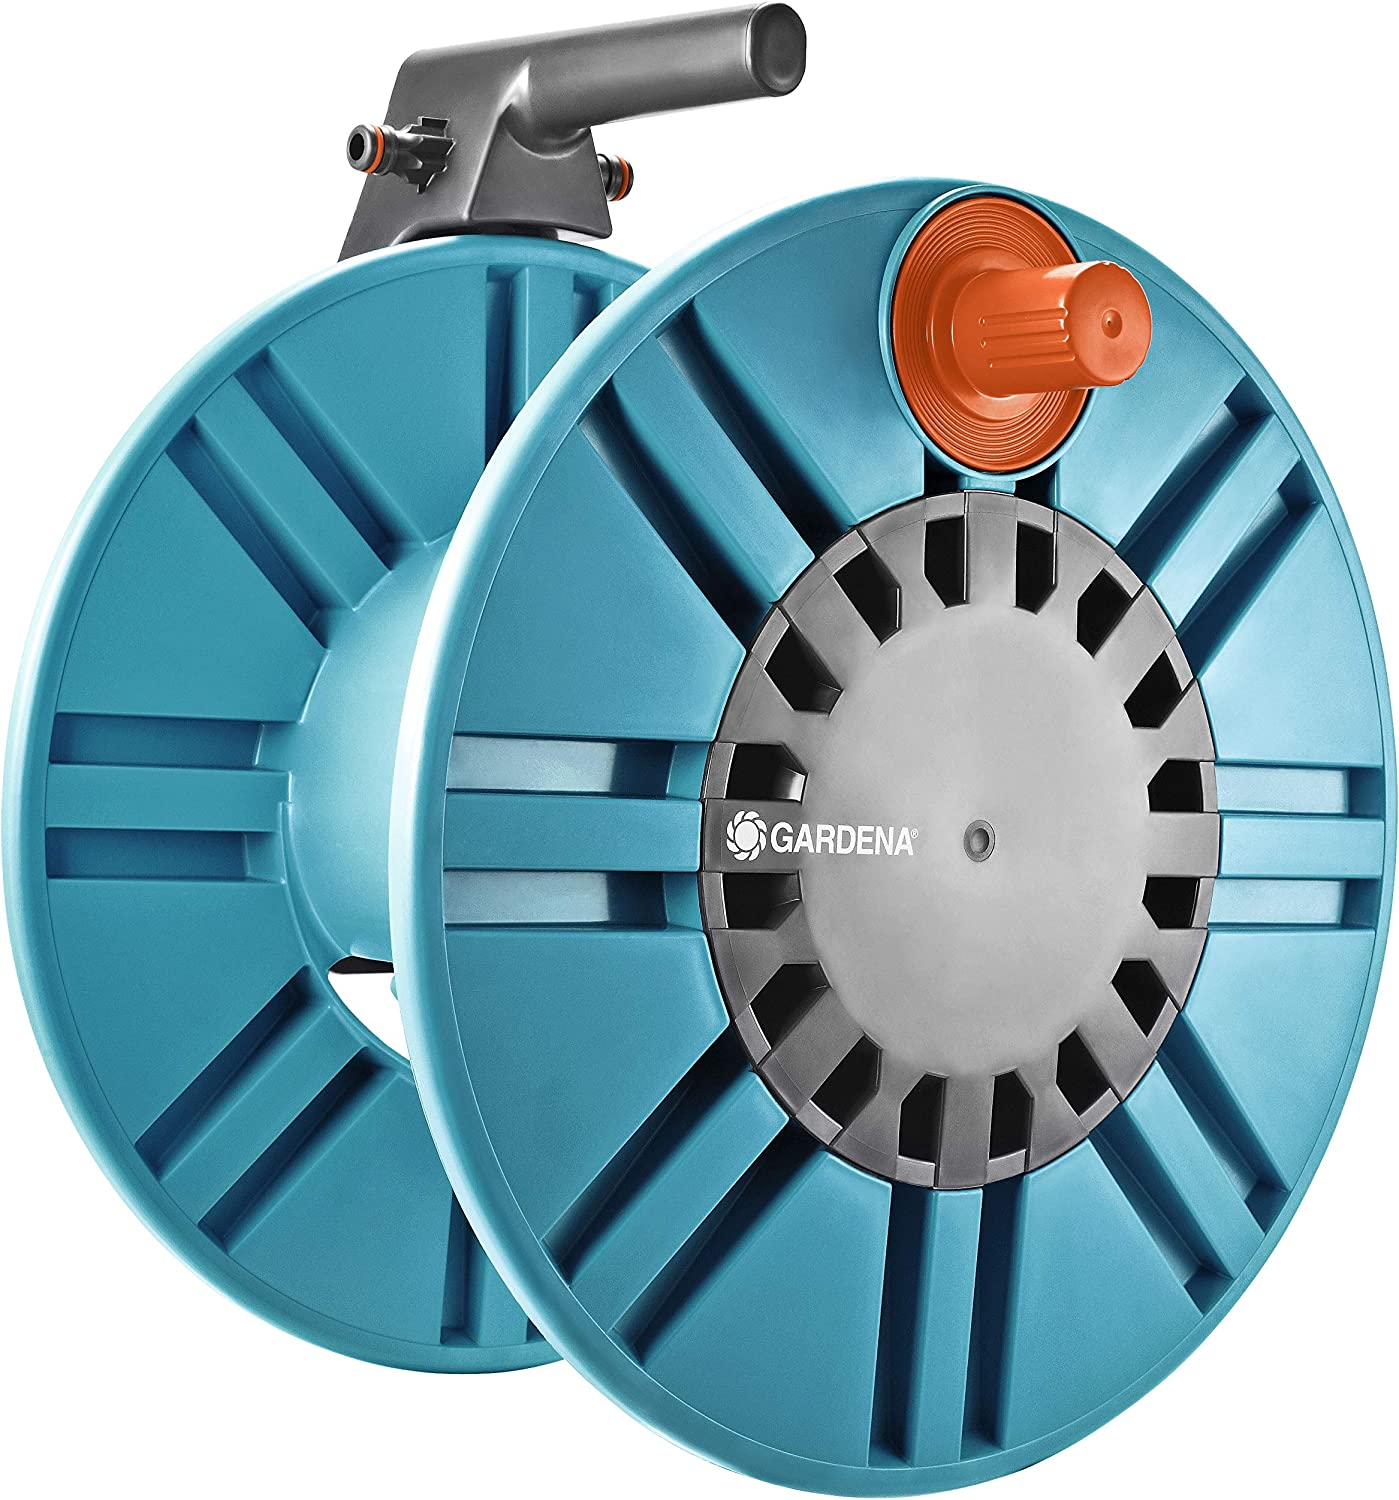 Gardena 2650 164-Foot Wall Mount Removable Garden Hose Reel With Hose Guide